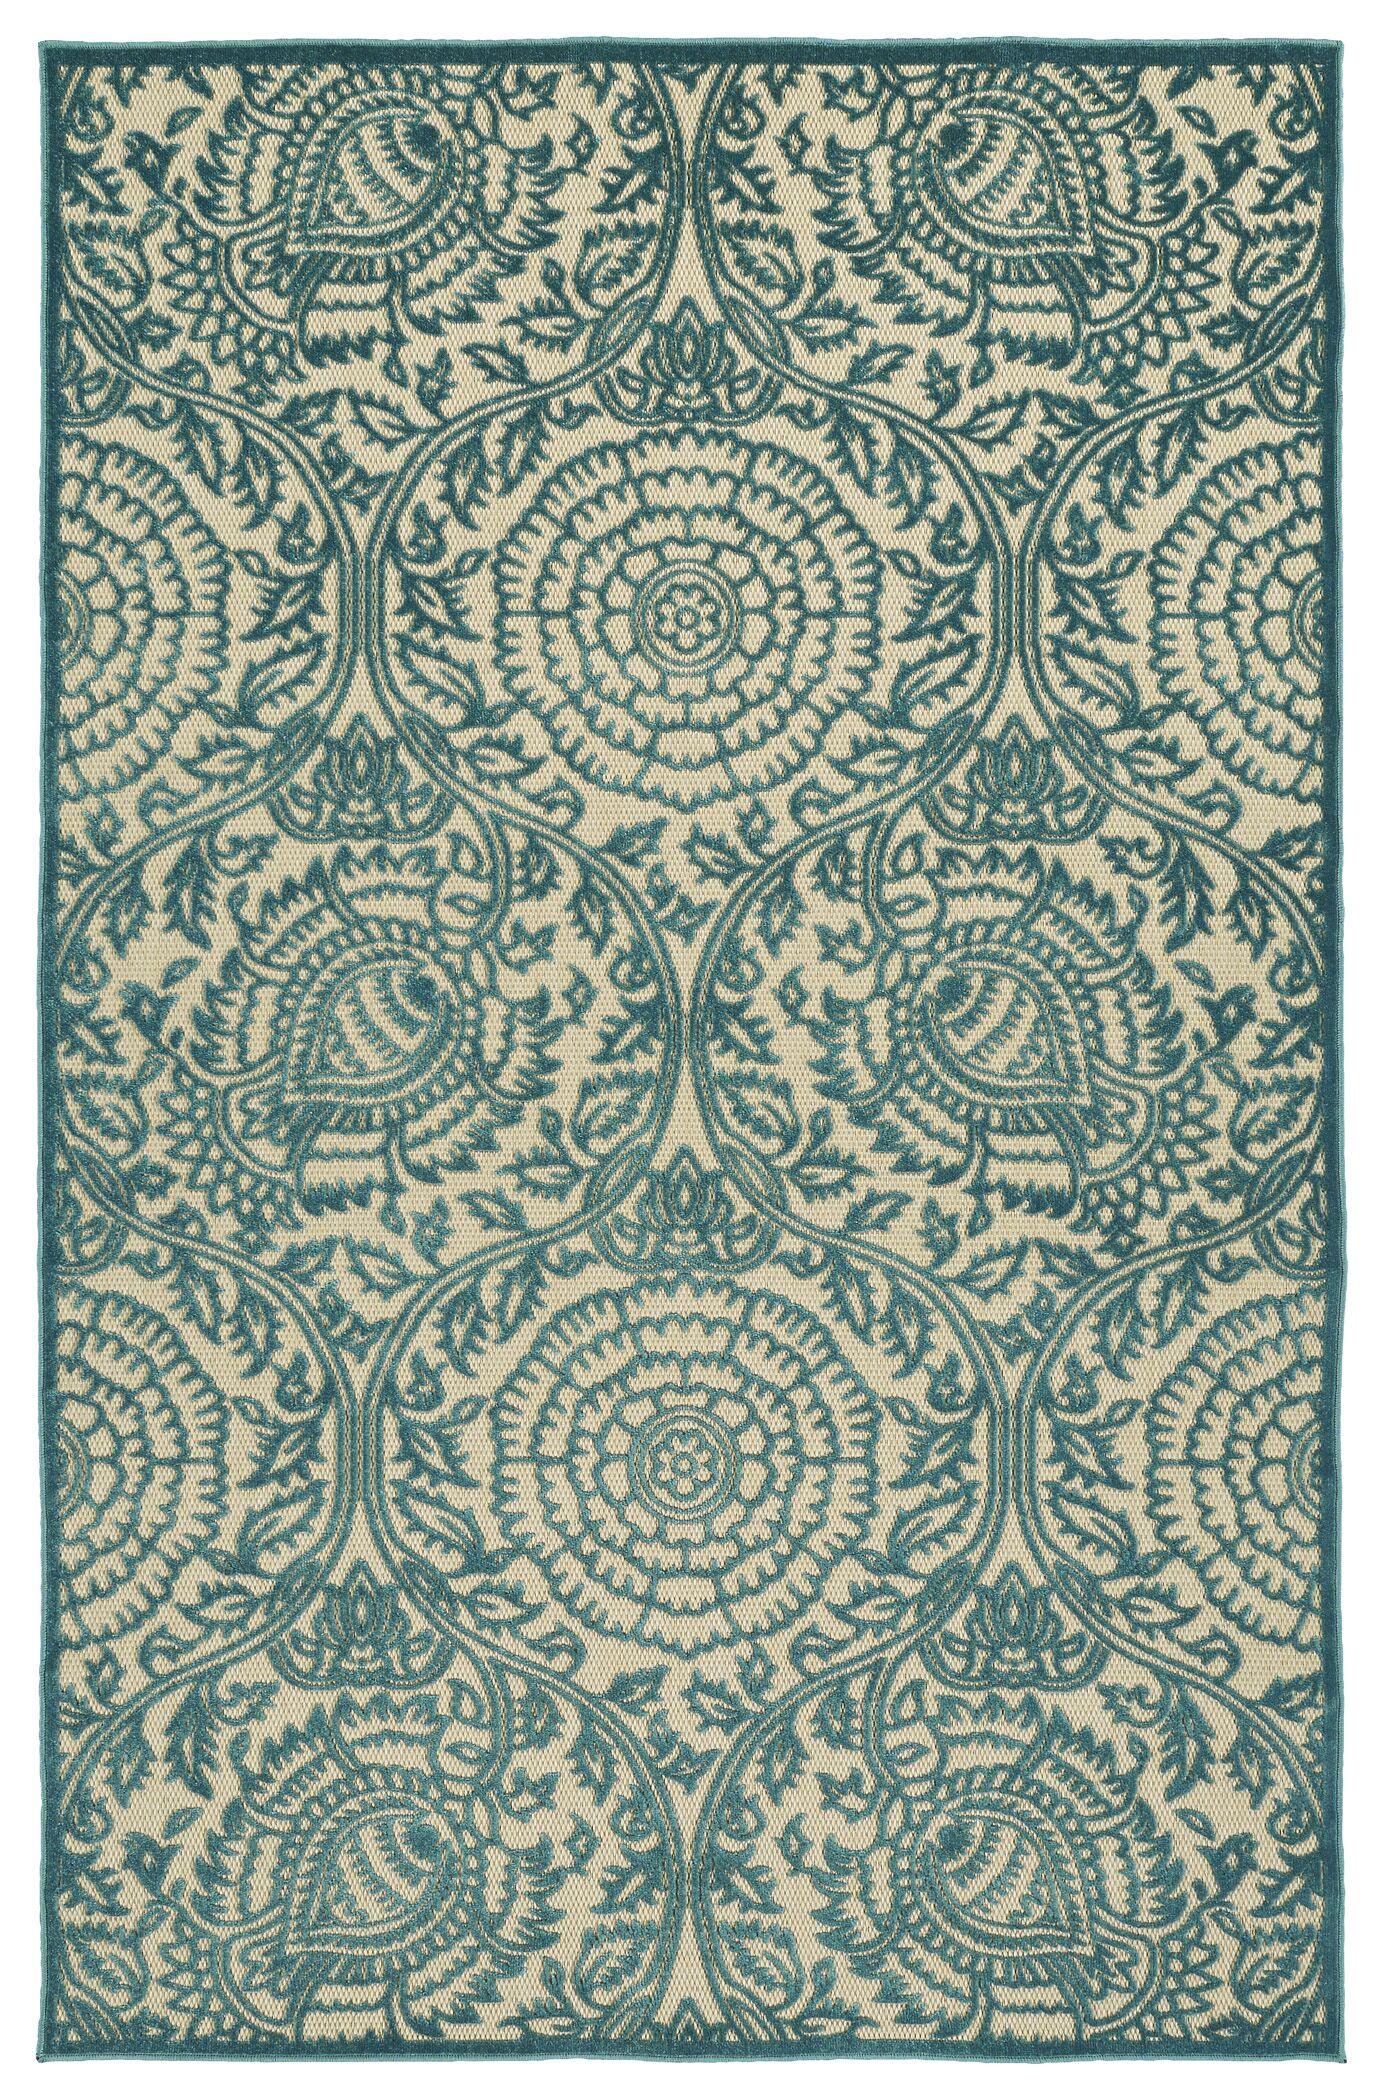 Covedale Machine Woven Blue Indoor/Outdoor Area Rug Rug Size: Rectangle 5' x 7'6